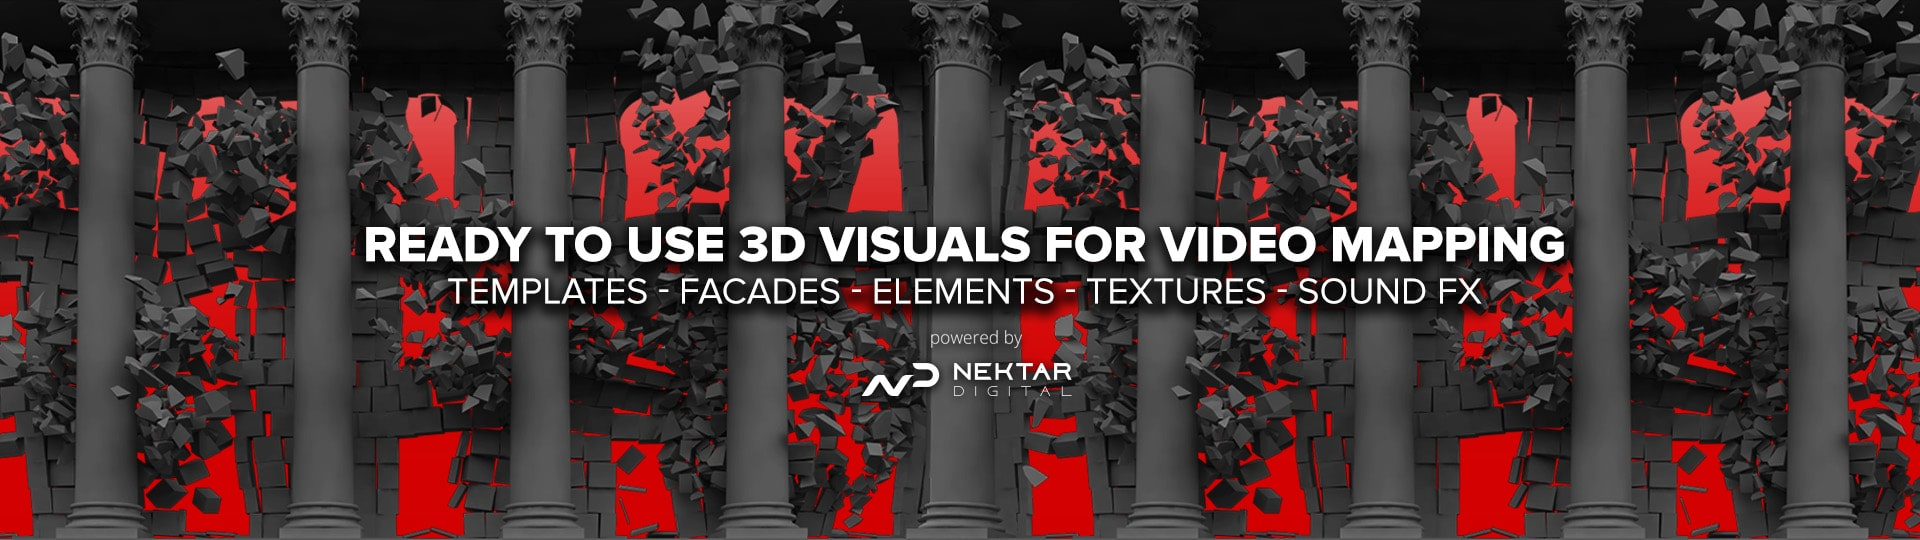 Video Mapping Content